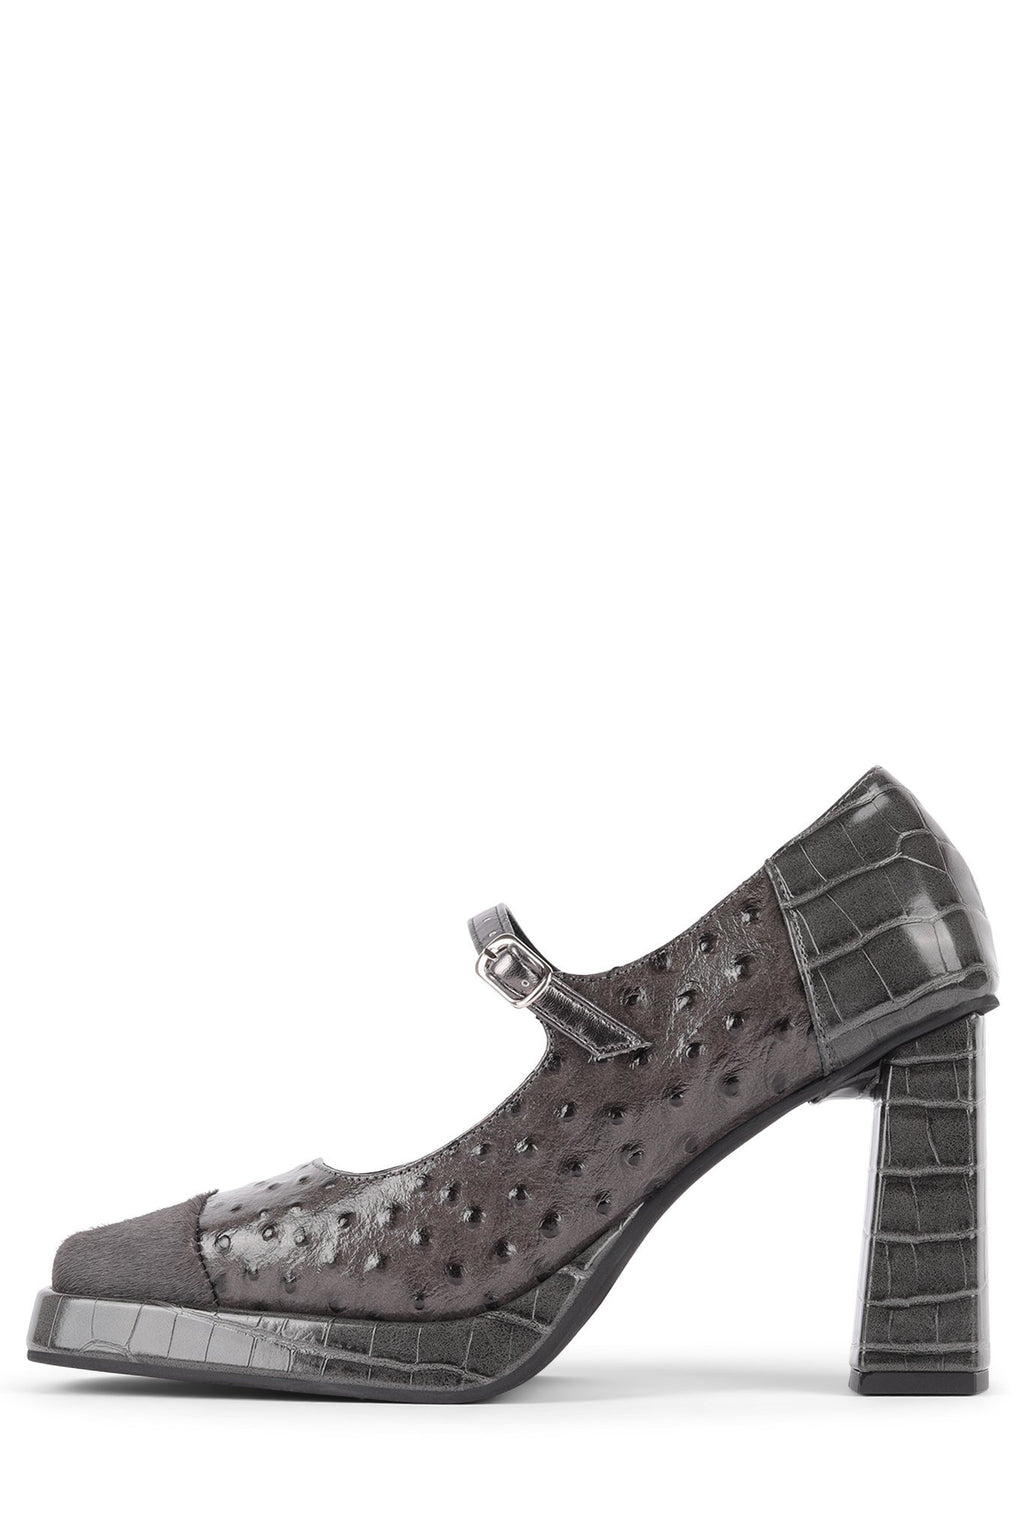 MAGNUS-2CB Jeffrey Campbell Grey Exotic Multi 6